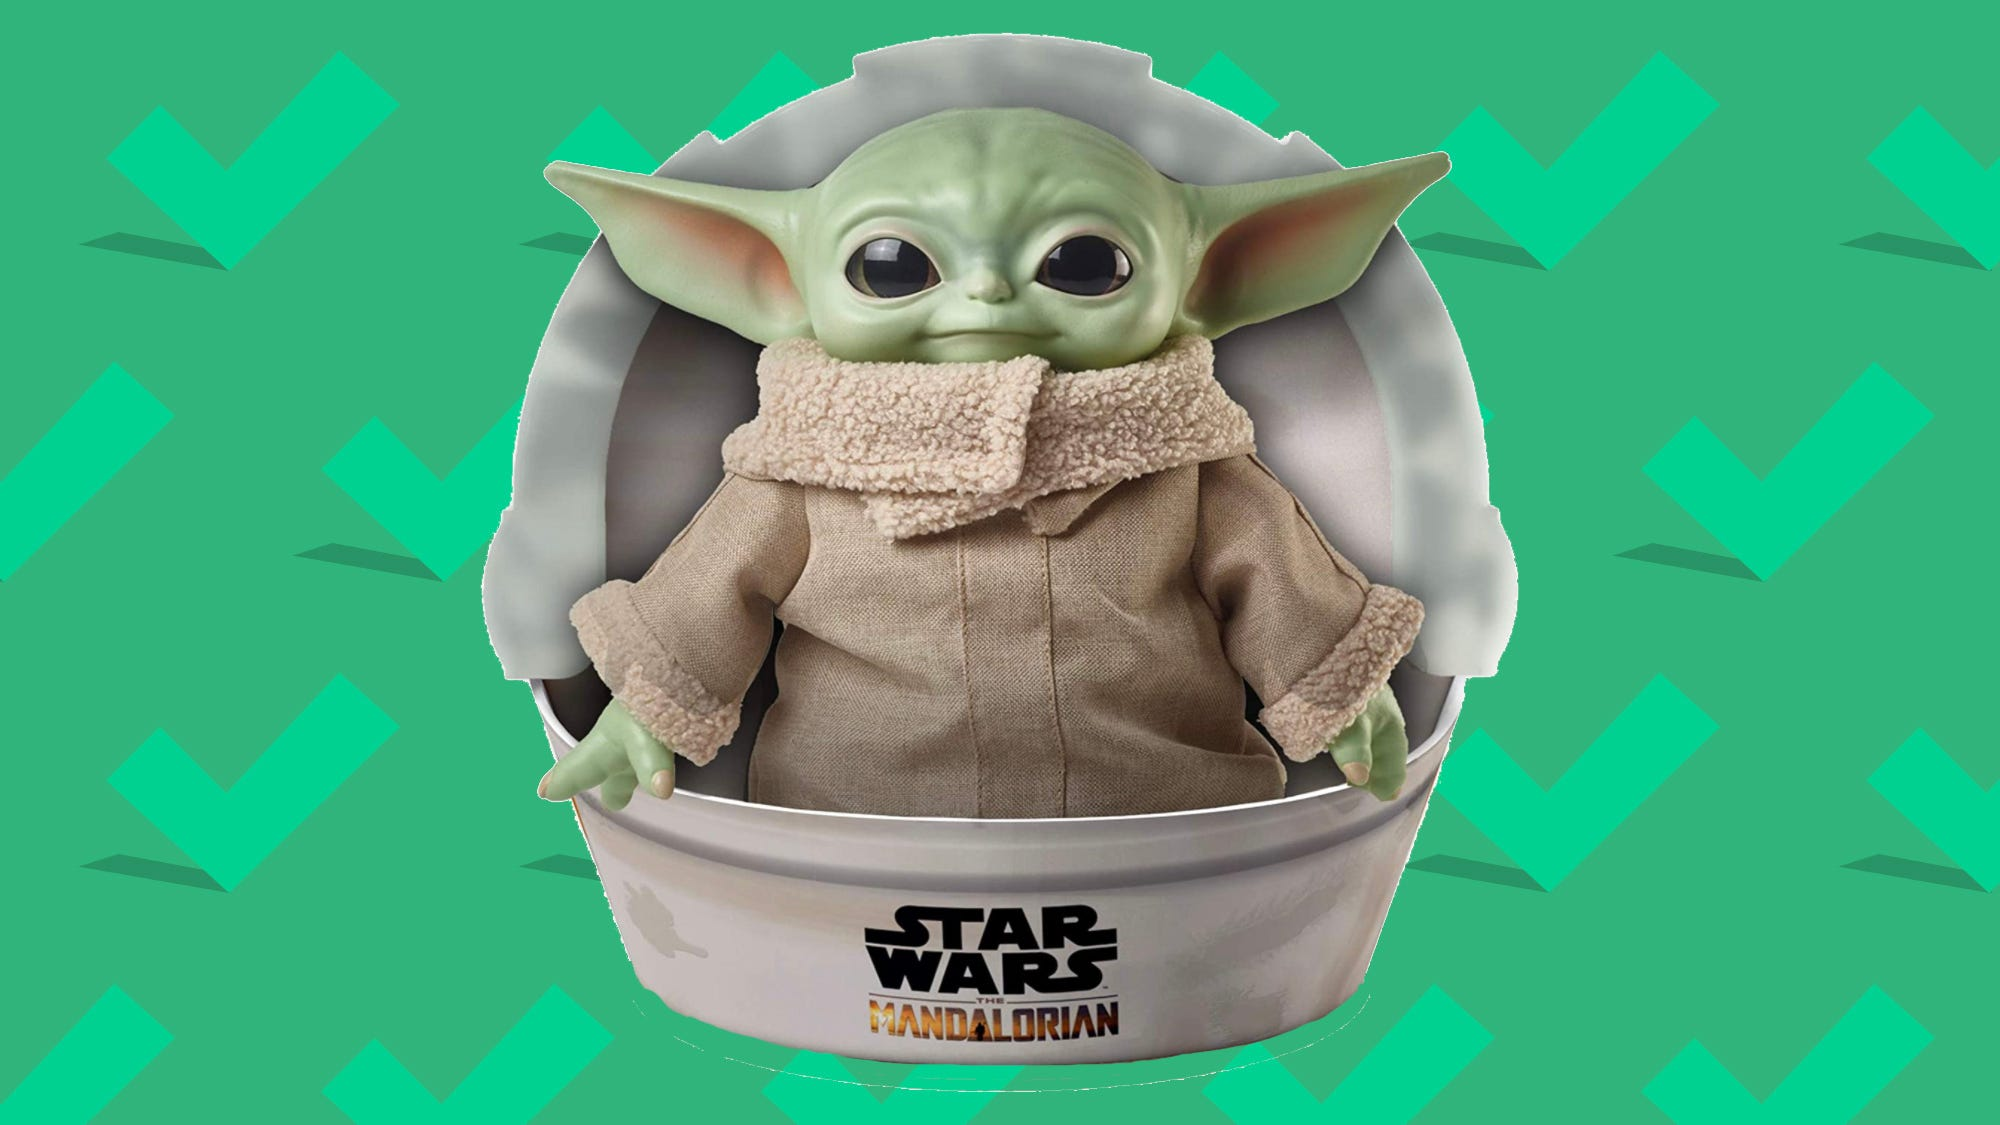 This Baby Yoda plush doll is one of the hottest toys of 2020—and it's at a big discount